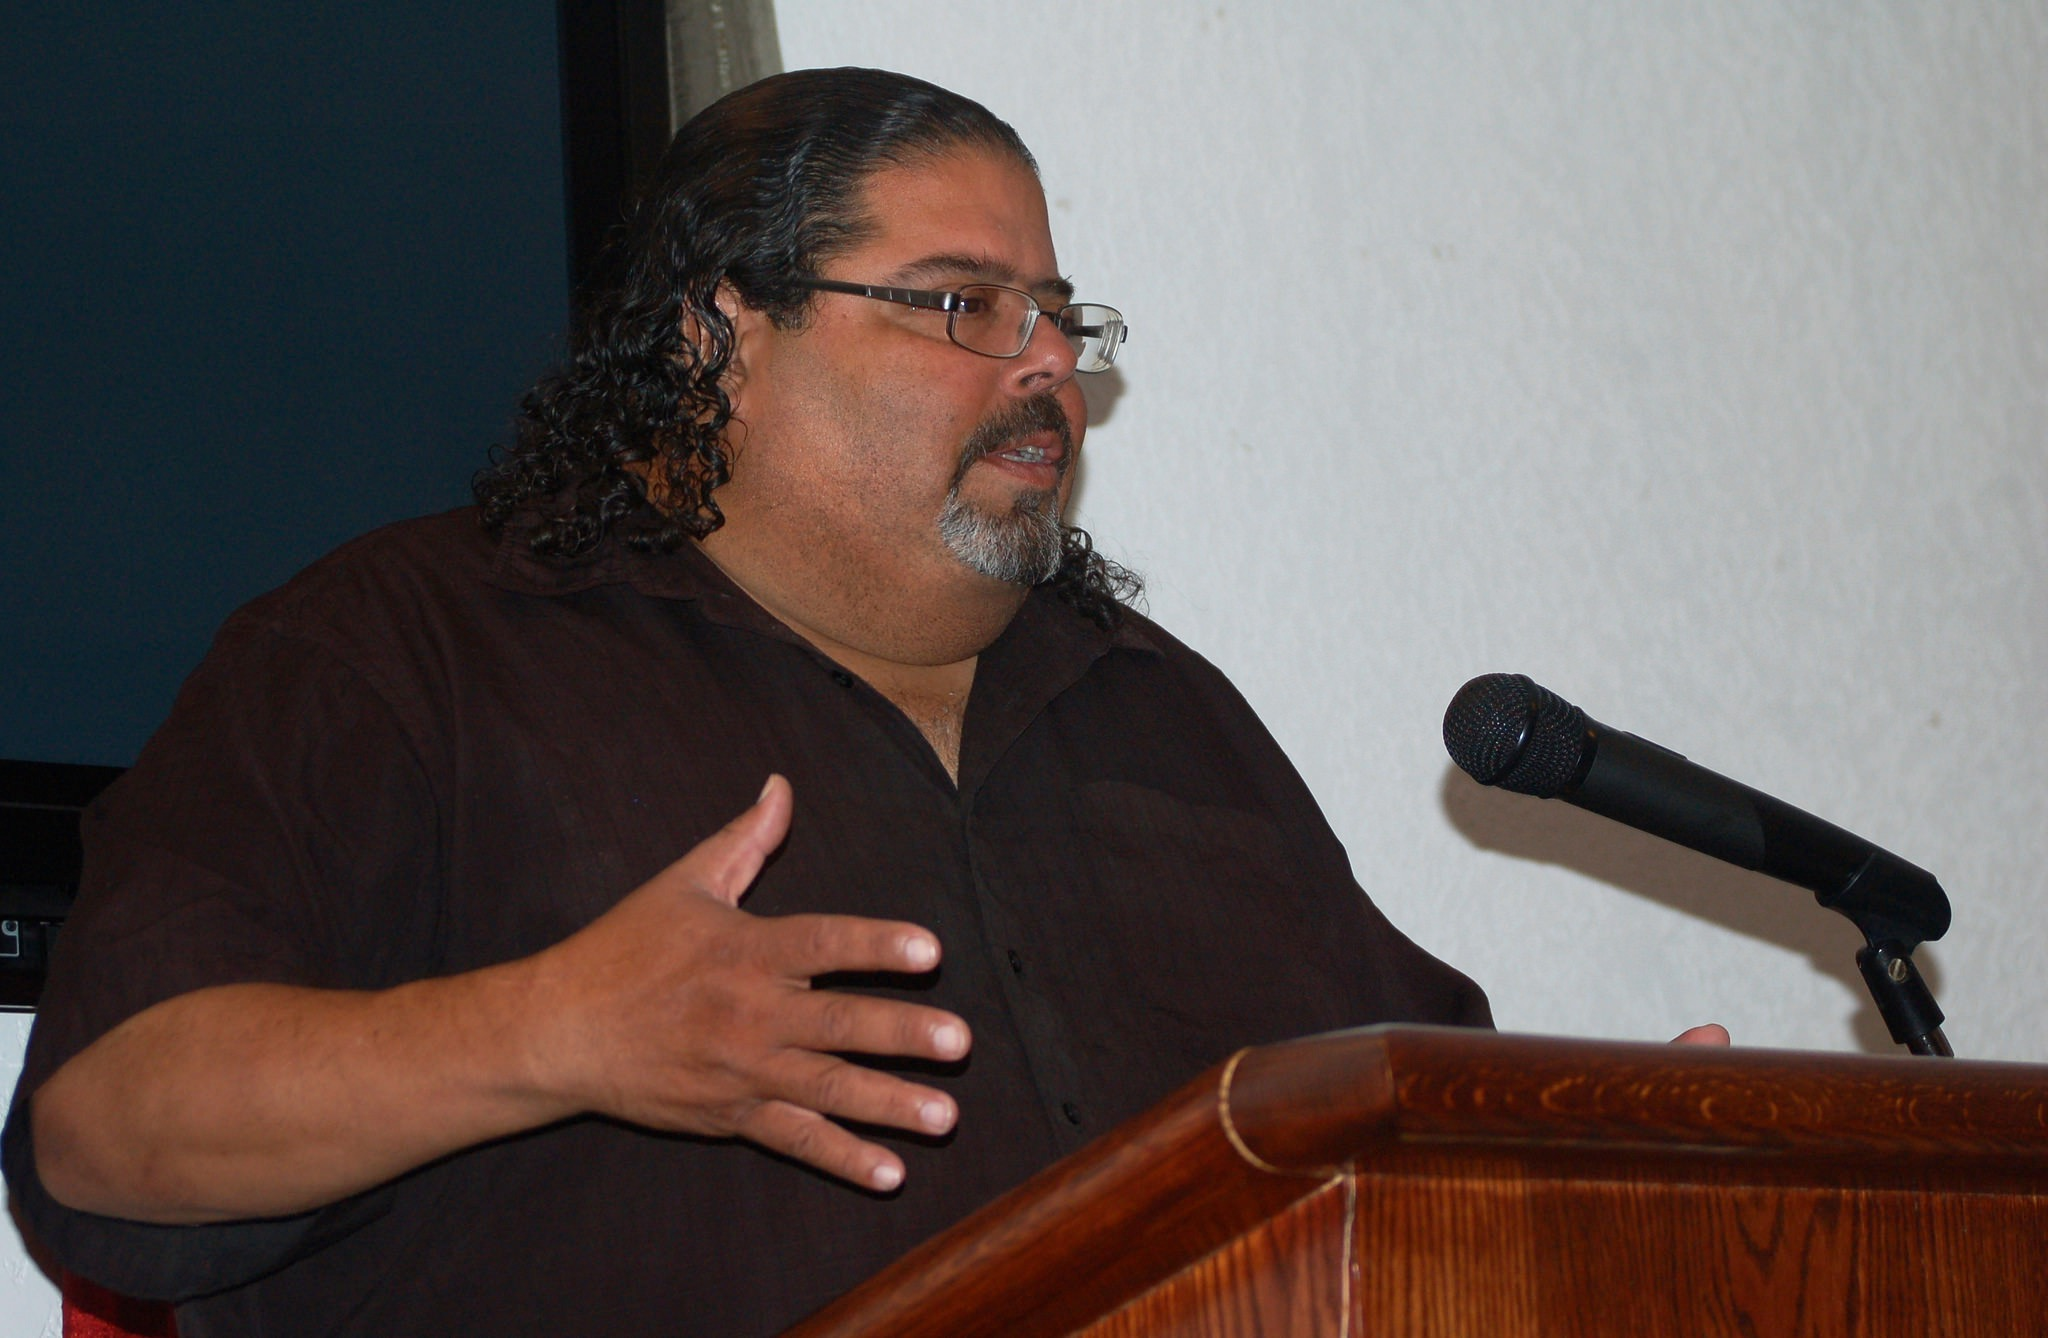 Roberto Miranda, a representatives of Freshwater for Life Action Coalition (FLAC), warned residents about elevated lead levels in their household water during a recent public meeting. (Photo by Edgar Mendez)